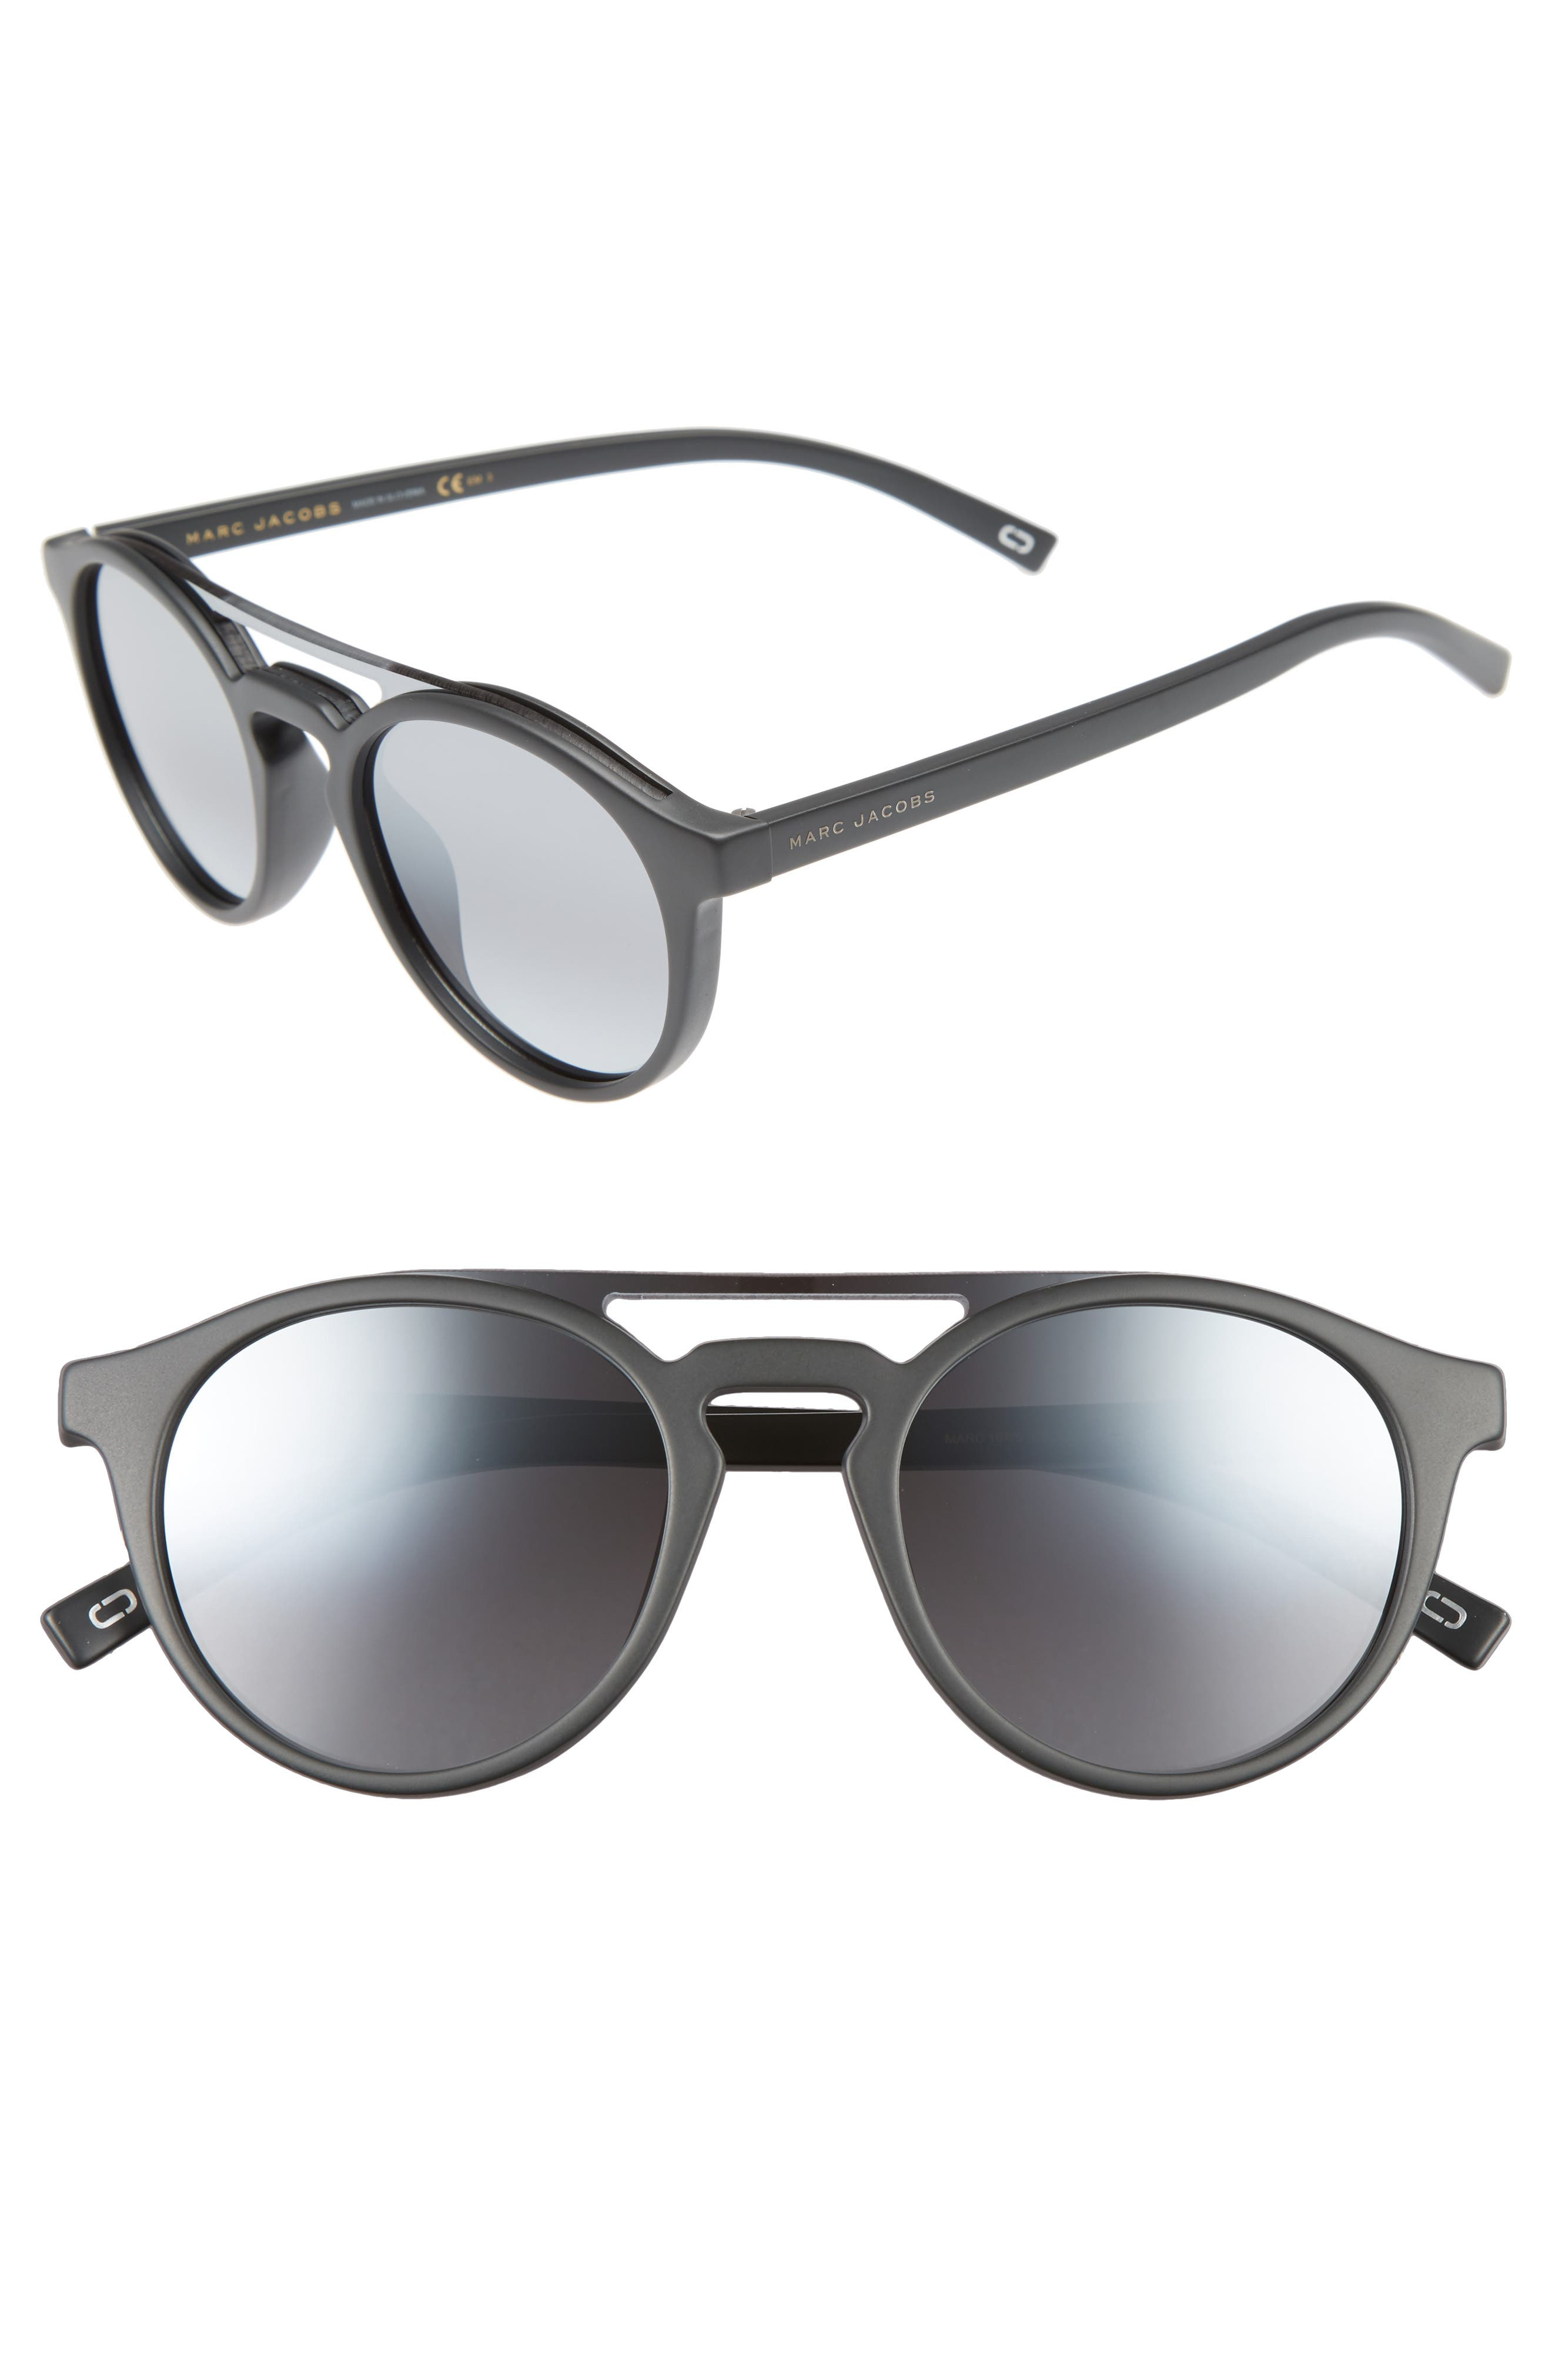 Main Image - MARC JACOBS 99mm Round Brow Bar Sunglasses